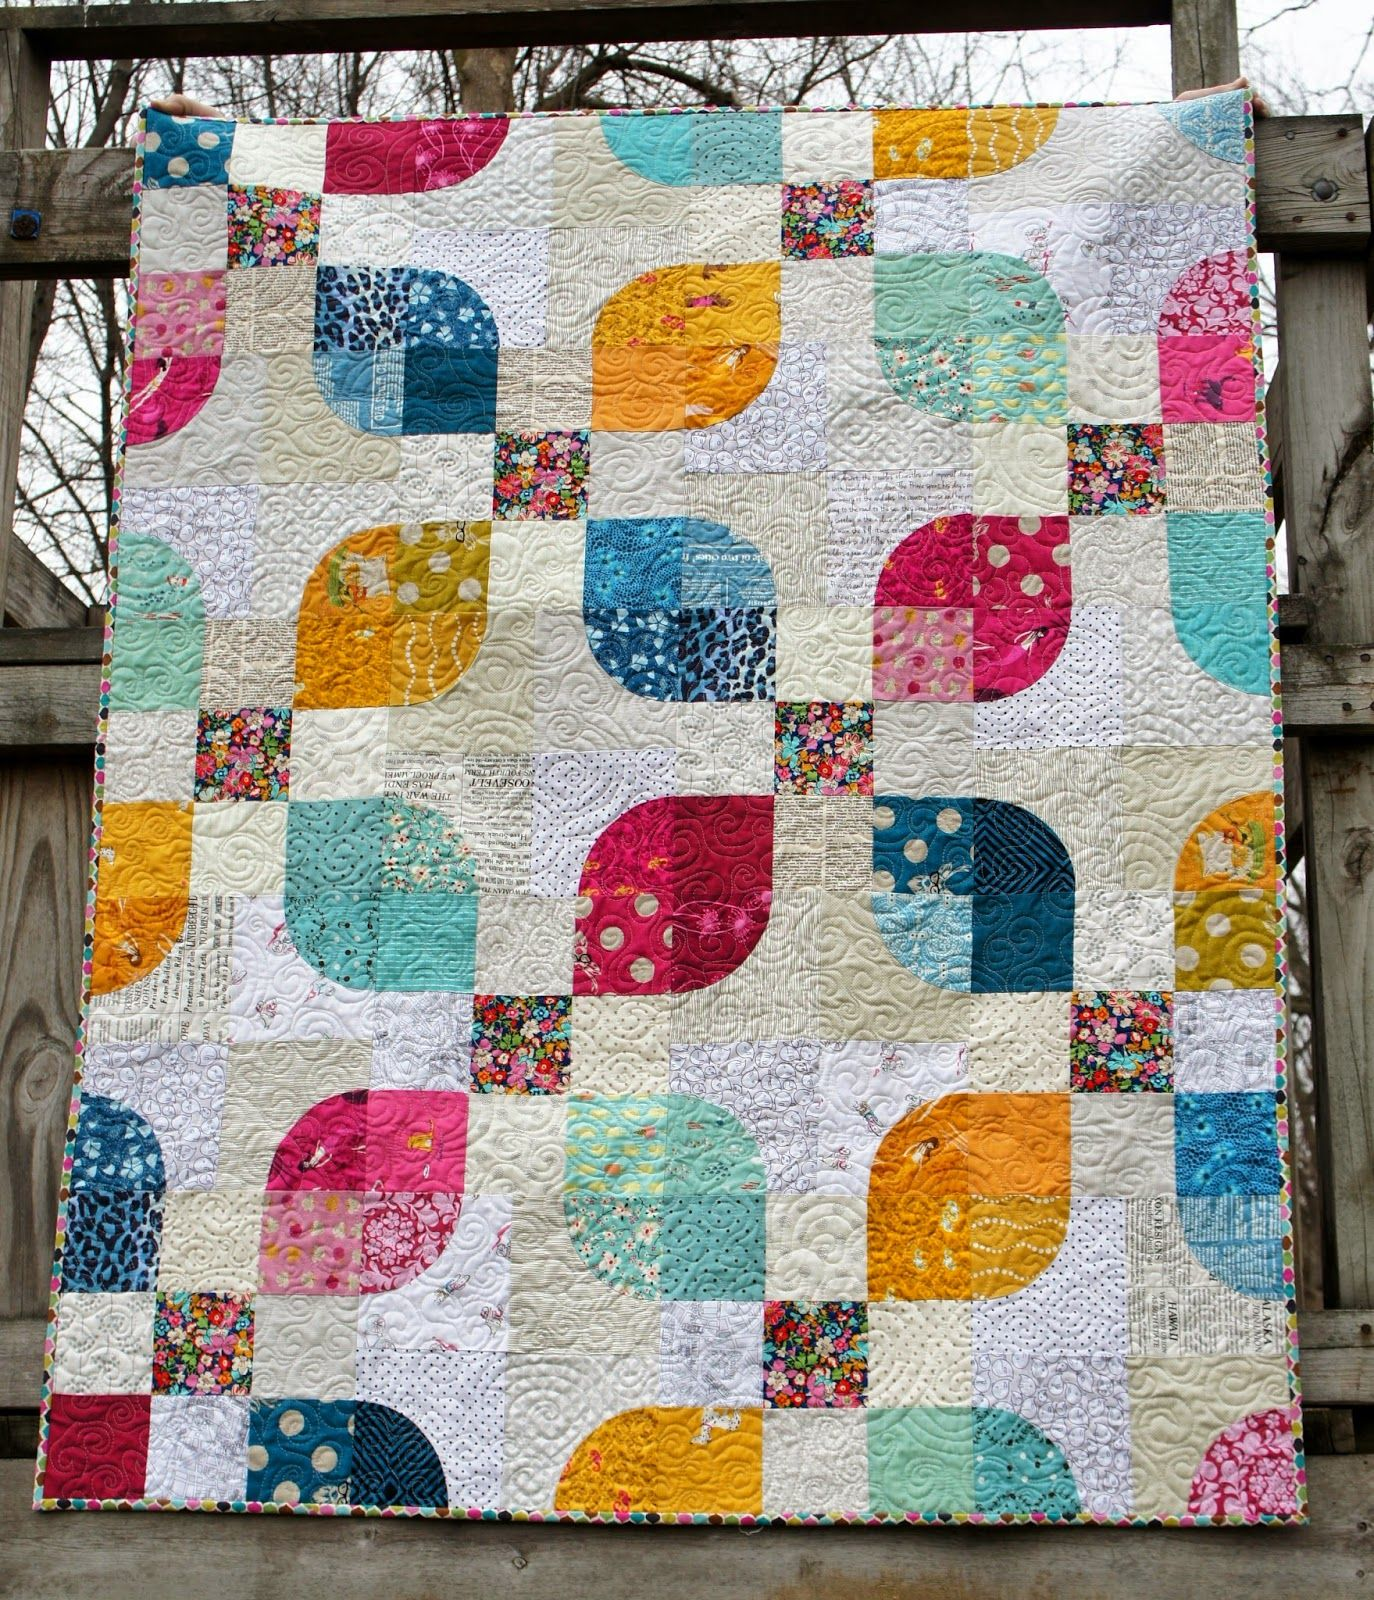 Quilting Template Drunkard S Path : Cut to Pieces: A combo of a 9 patch and drunkard s path pattern, love this so much! Adore the ...